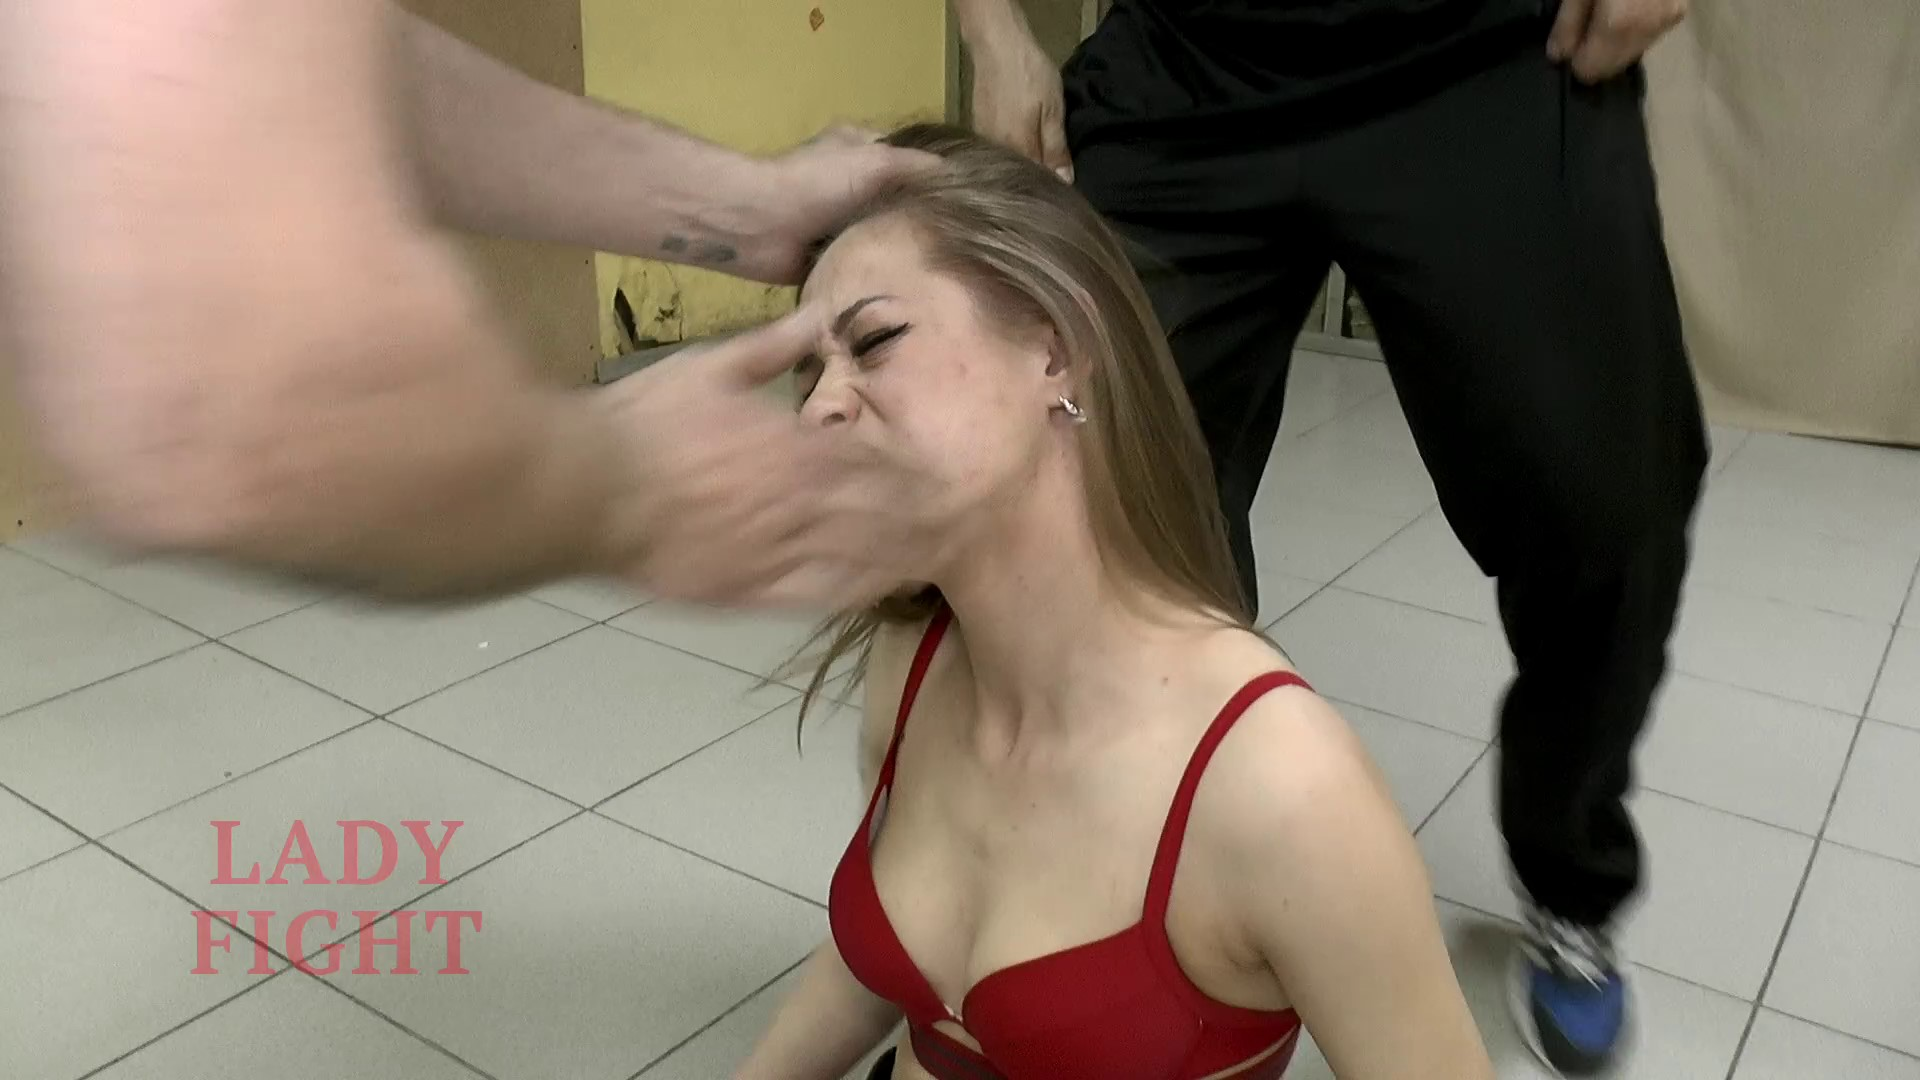 LADYFIGHT-Deadly-Wrestling-For-Lora-68